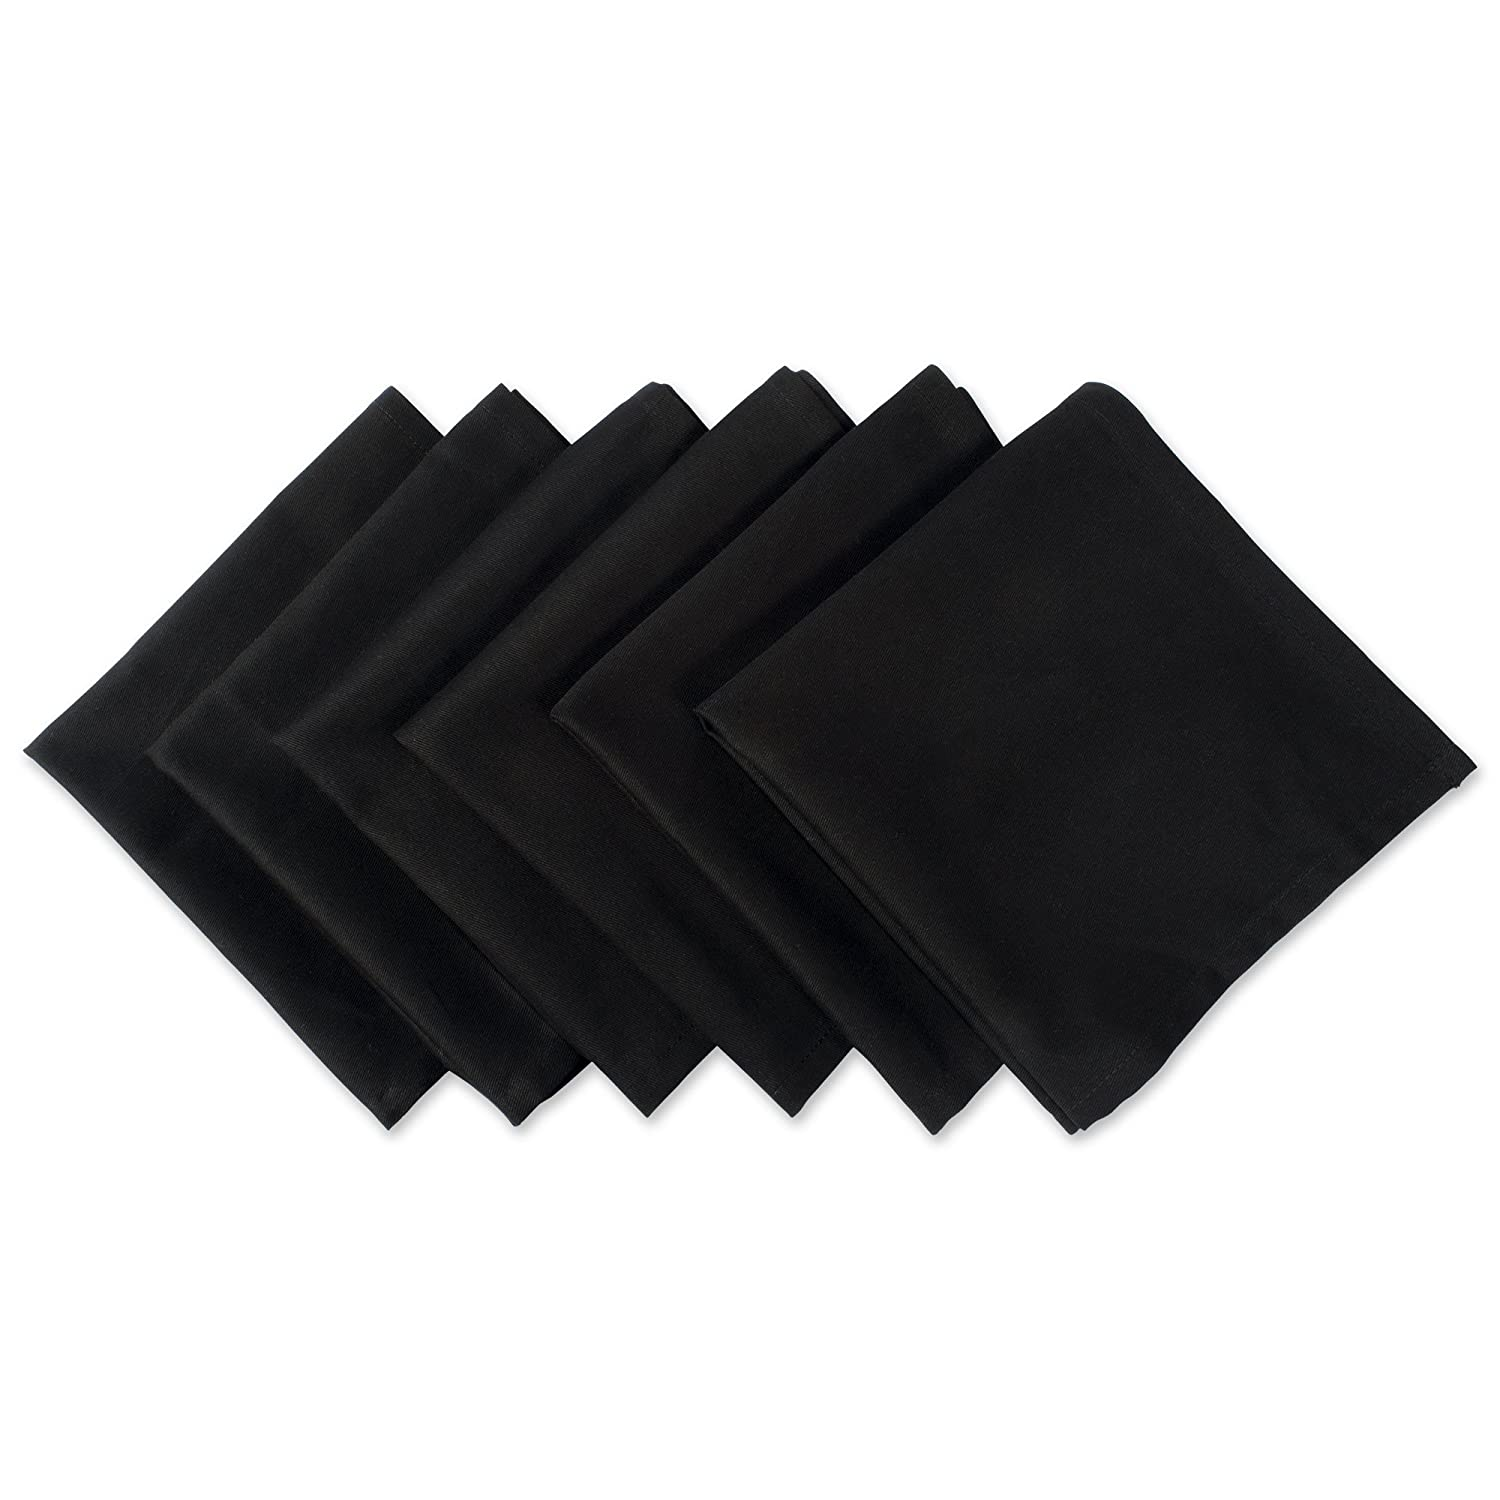 "DII 100% Cotton Cloth Napkins, Oversized 20x20"" Dinner Napkins, For Basic Everyday Use, Banquets, Weddings, Events, or Family Gatherings - Set of 6, Black"